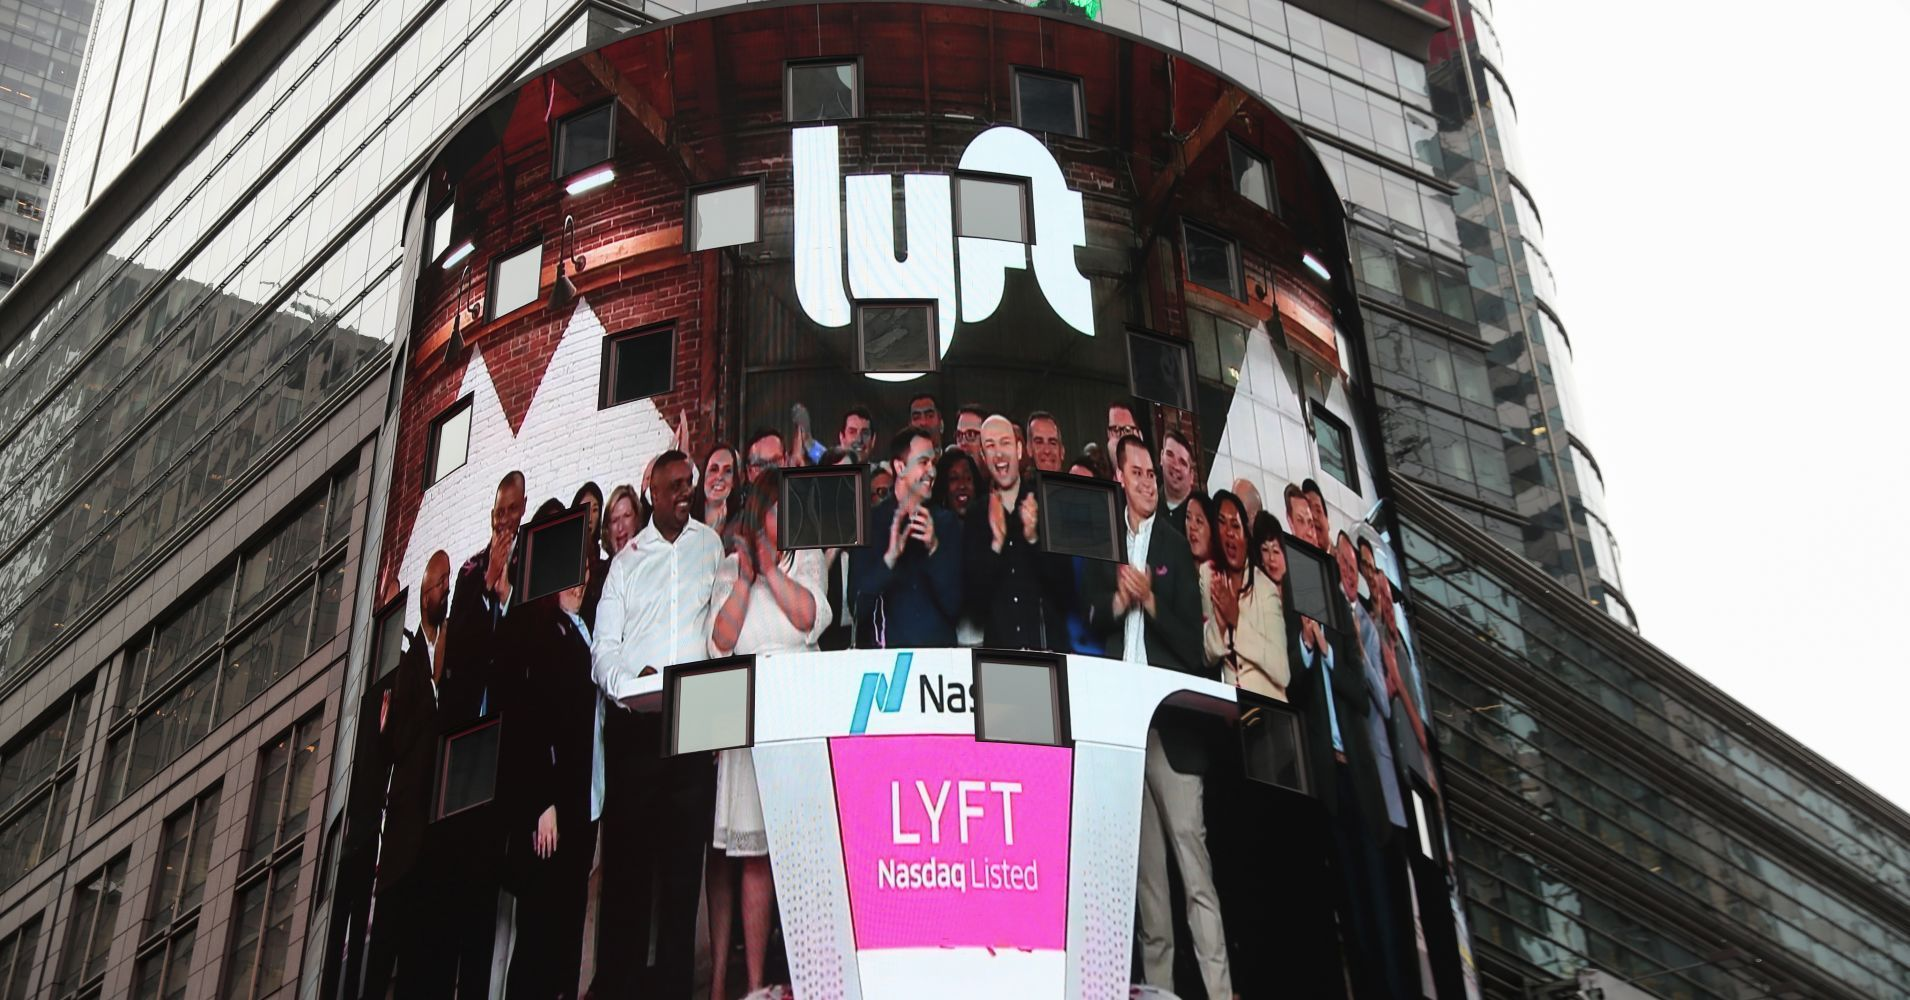 Buying Lyft stock requires making 'too many big